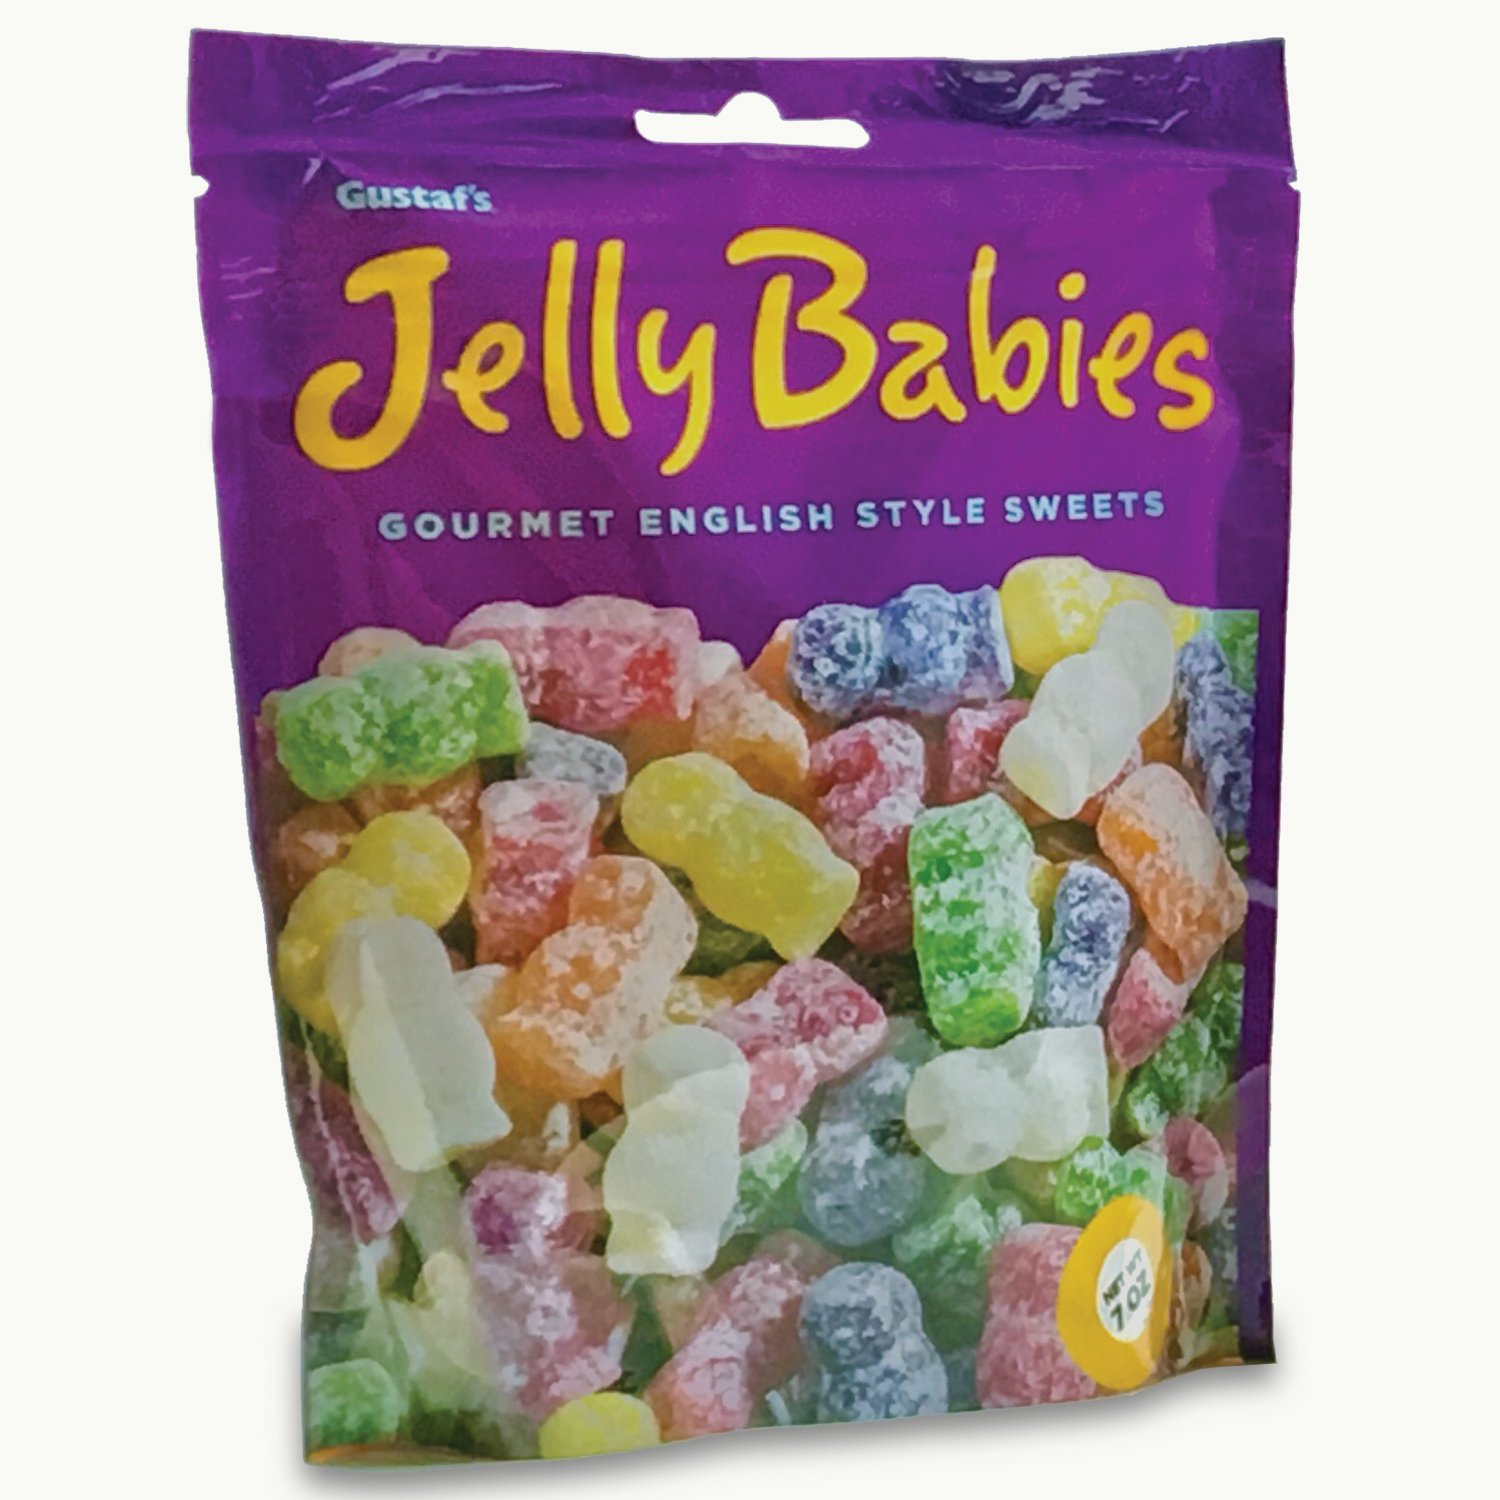 Gustaf's Jelly Babies, 2.2-Pound Bags (Pack of 3)